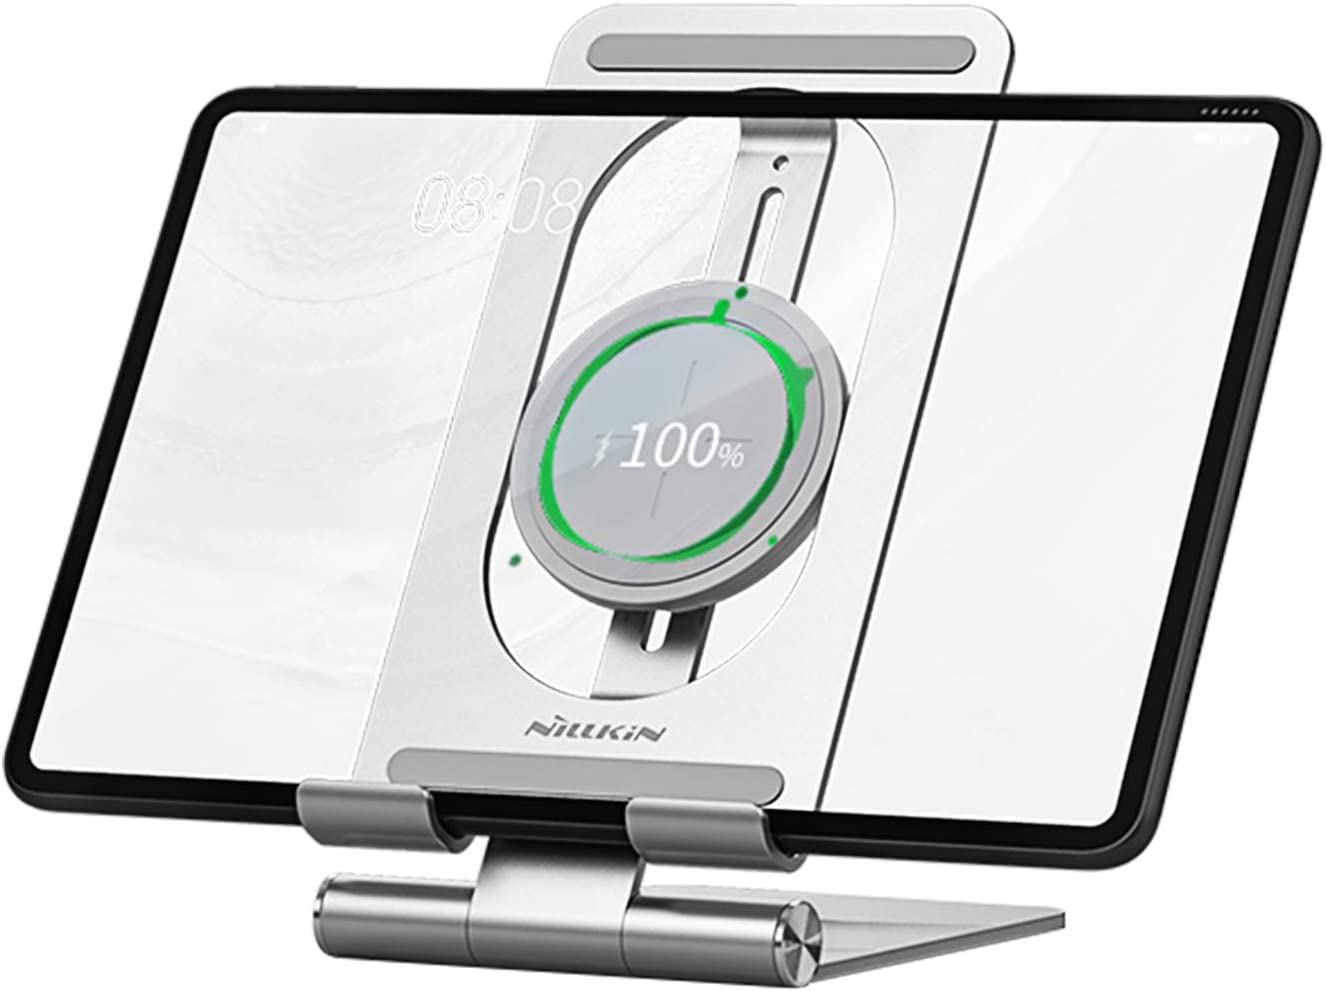 Nillkin Wireless ipad Charger Tablet Stand Tulsa Mall 2 1 Holder famous - in